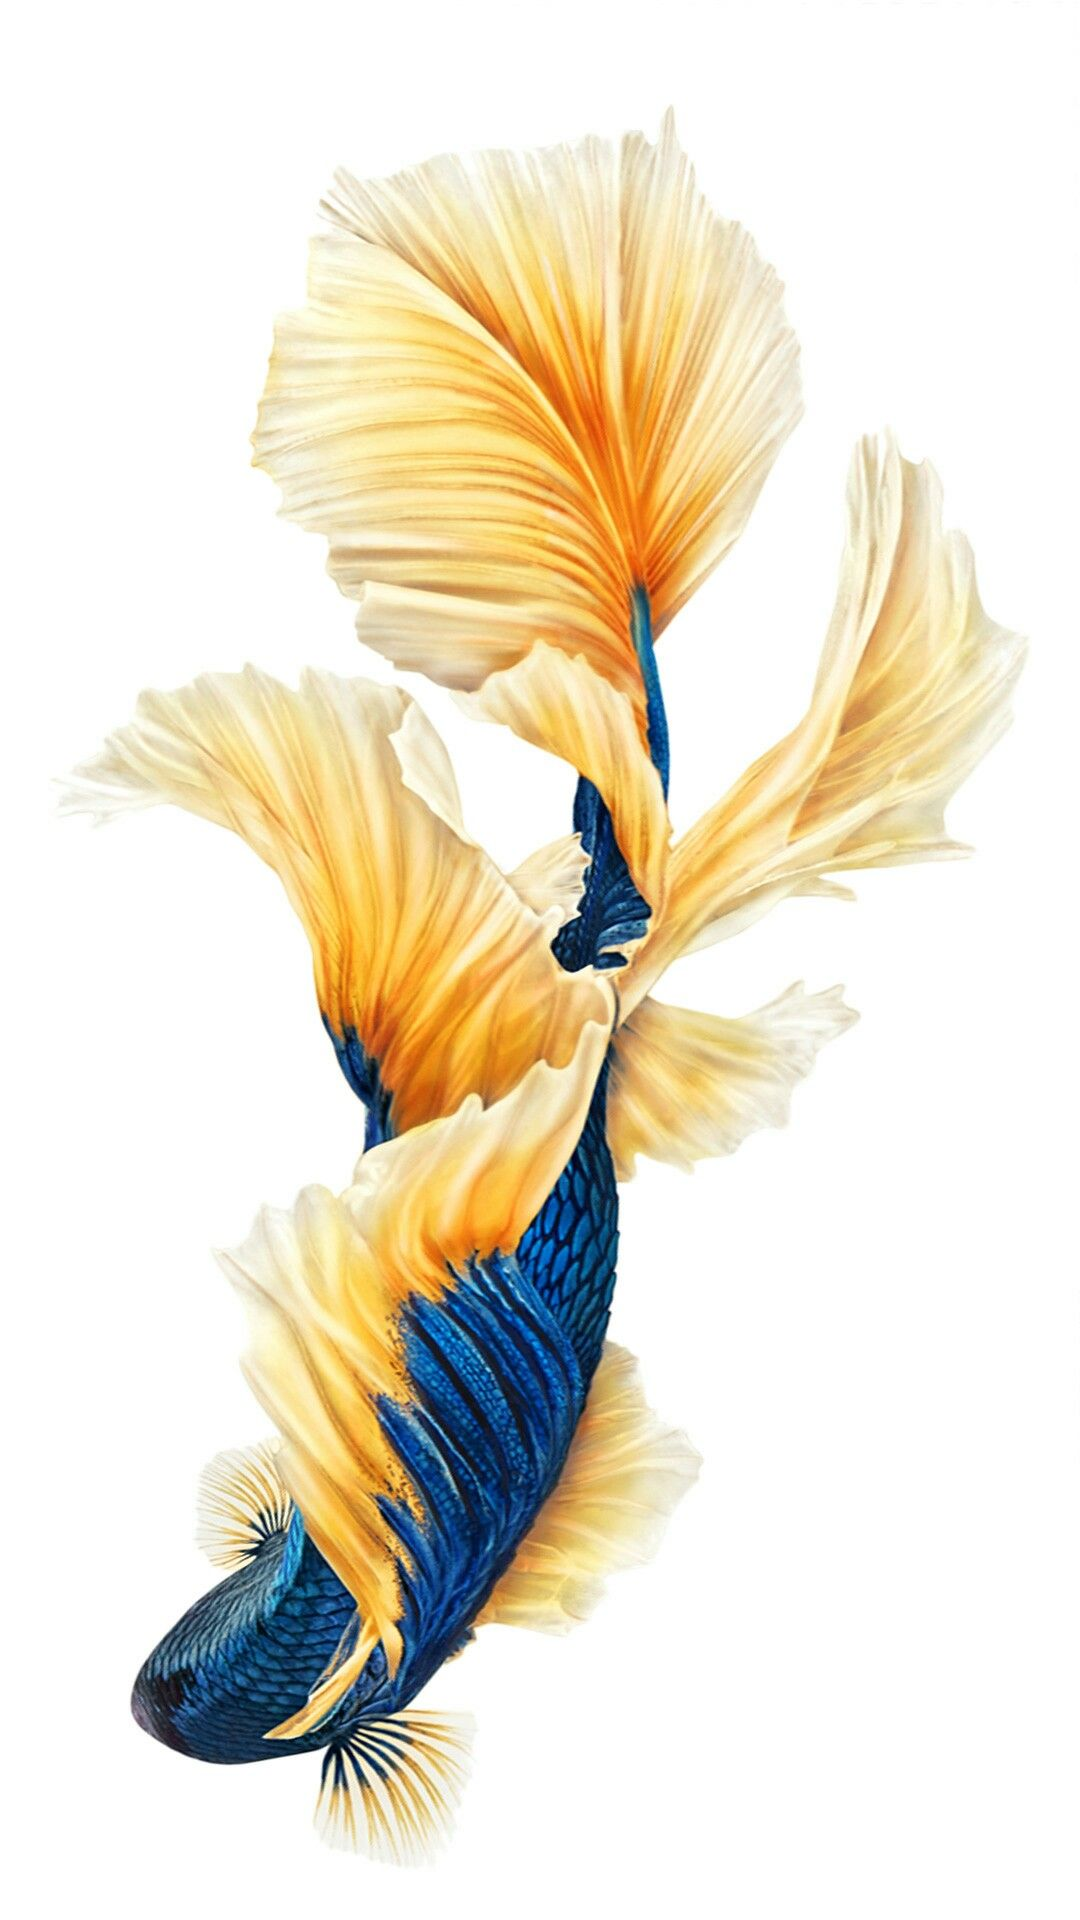 Pin by 喵喵 on 墙纸 Fish wallpaper iphone, Fish wallpaper